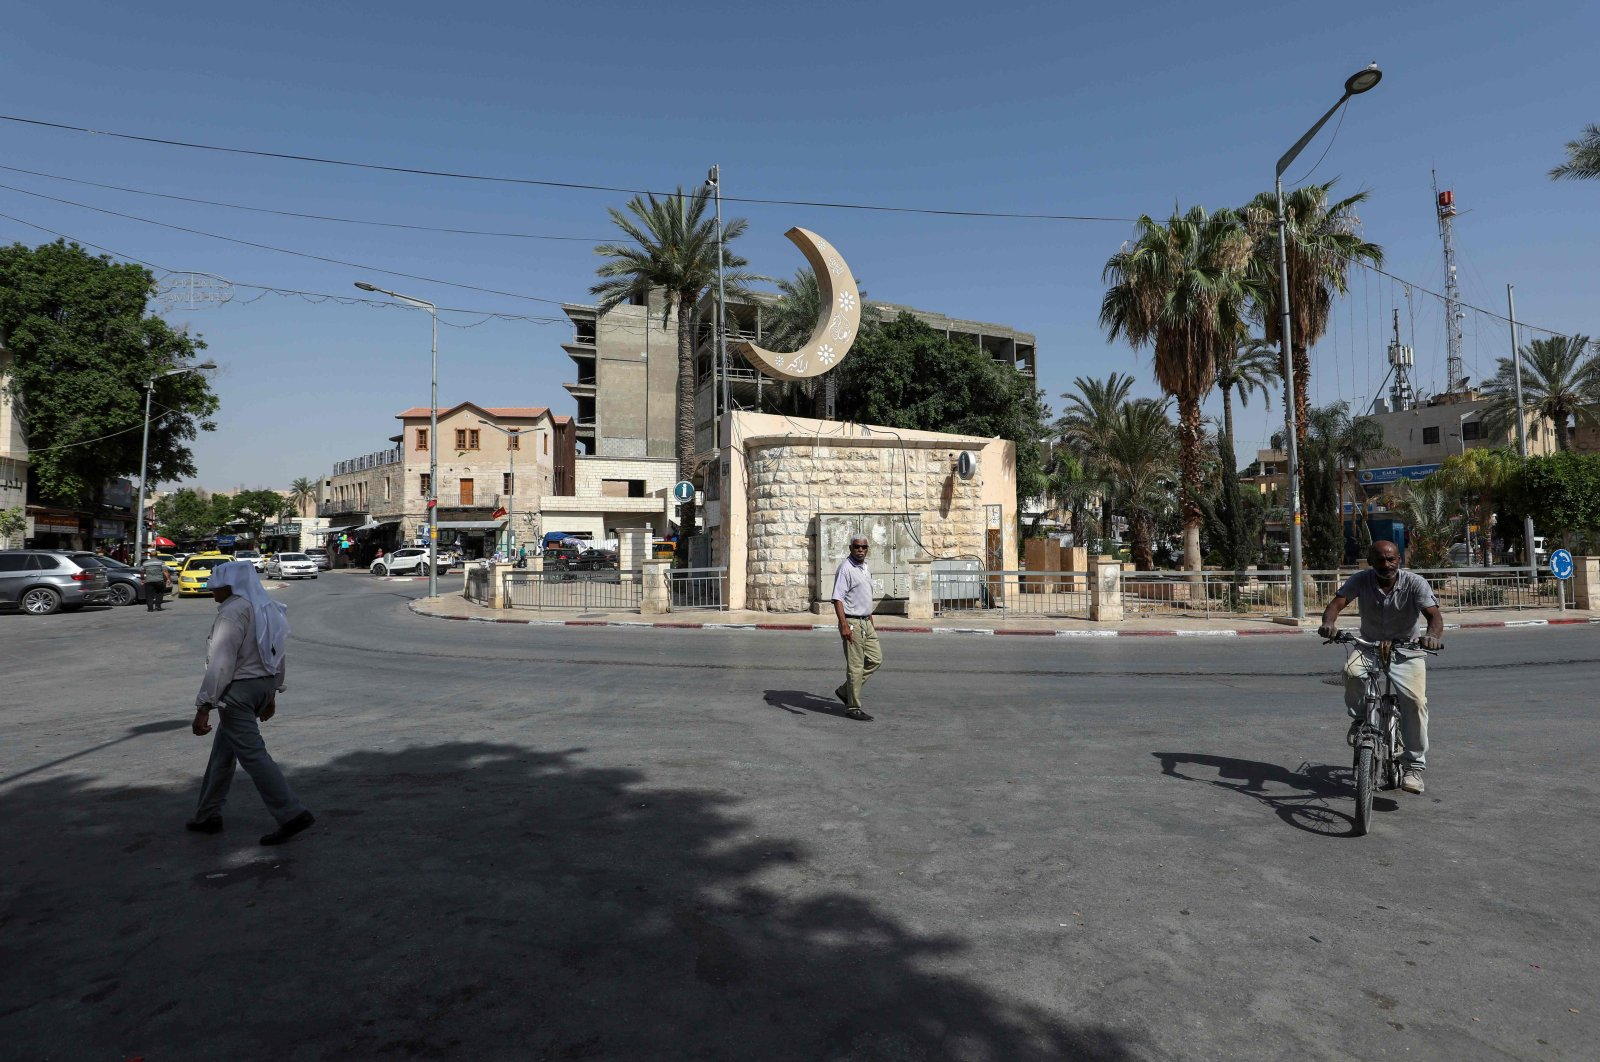 Palestinians pass by on a street in the occupied West Bank city of Jericho, Palestine, June 21, 2020. (AFP Photo)